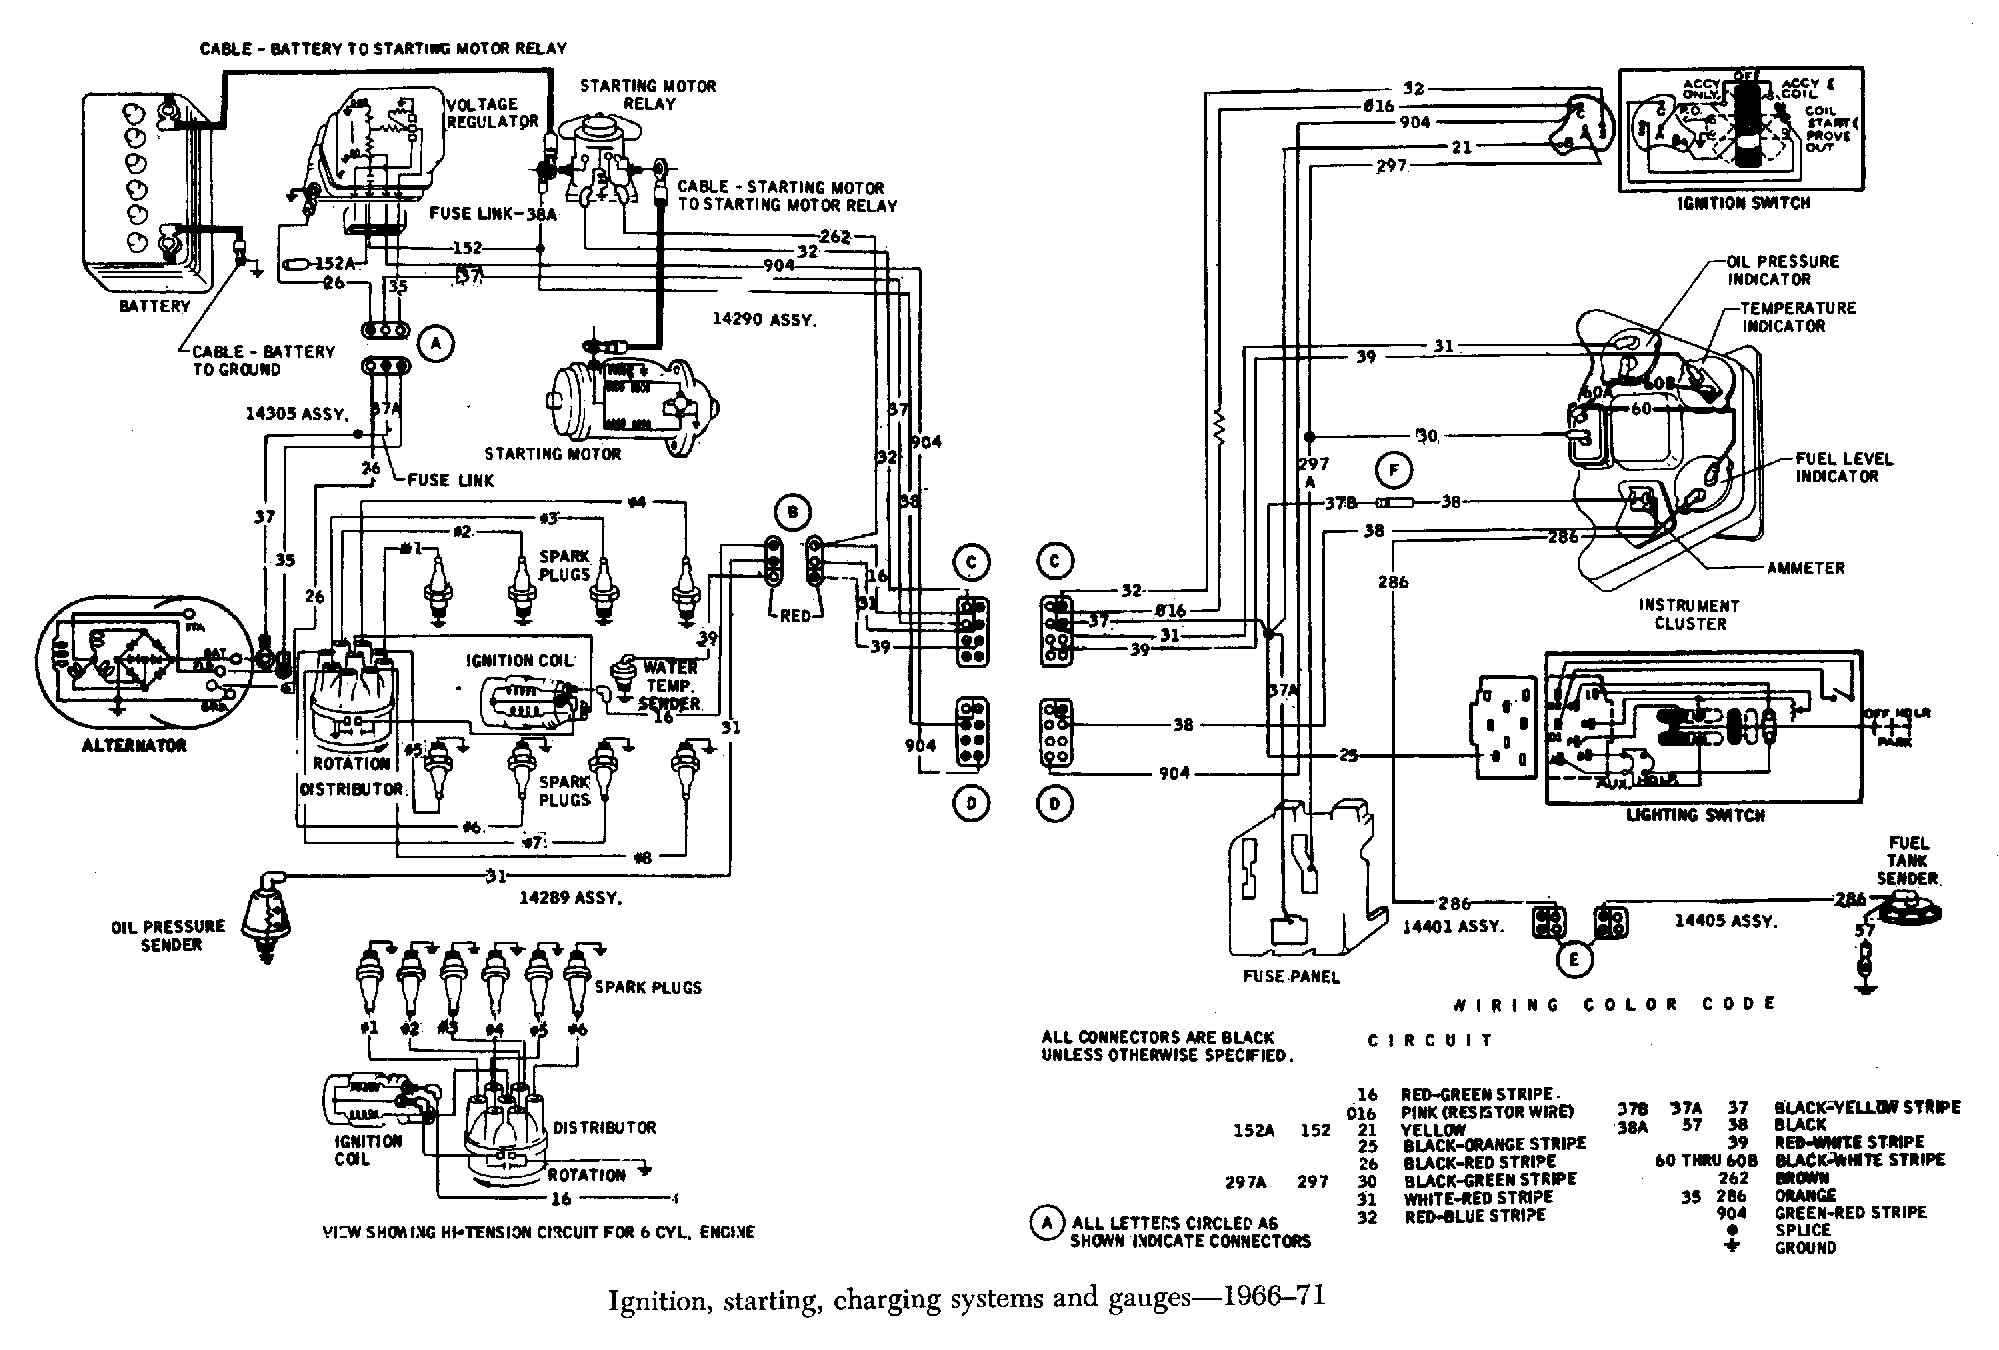 Chevy Ignition Coil Wiring Diagram New Lovely Chevy Spark Plug Wiring Diagram Inspiration